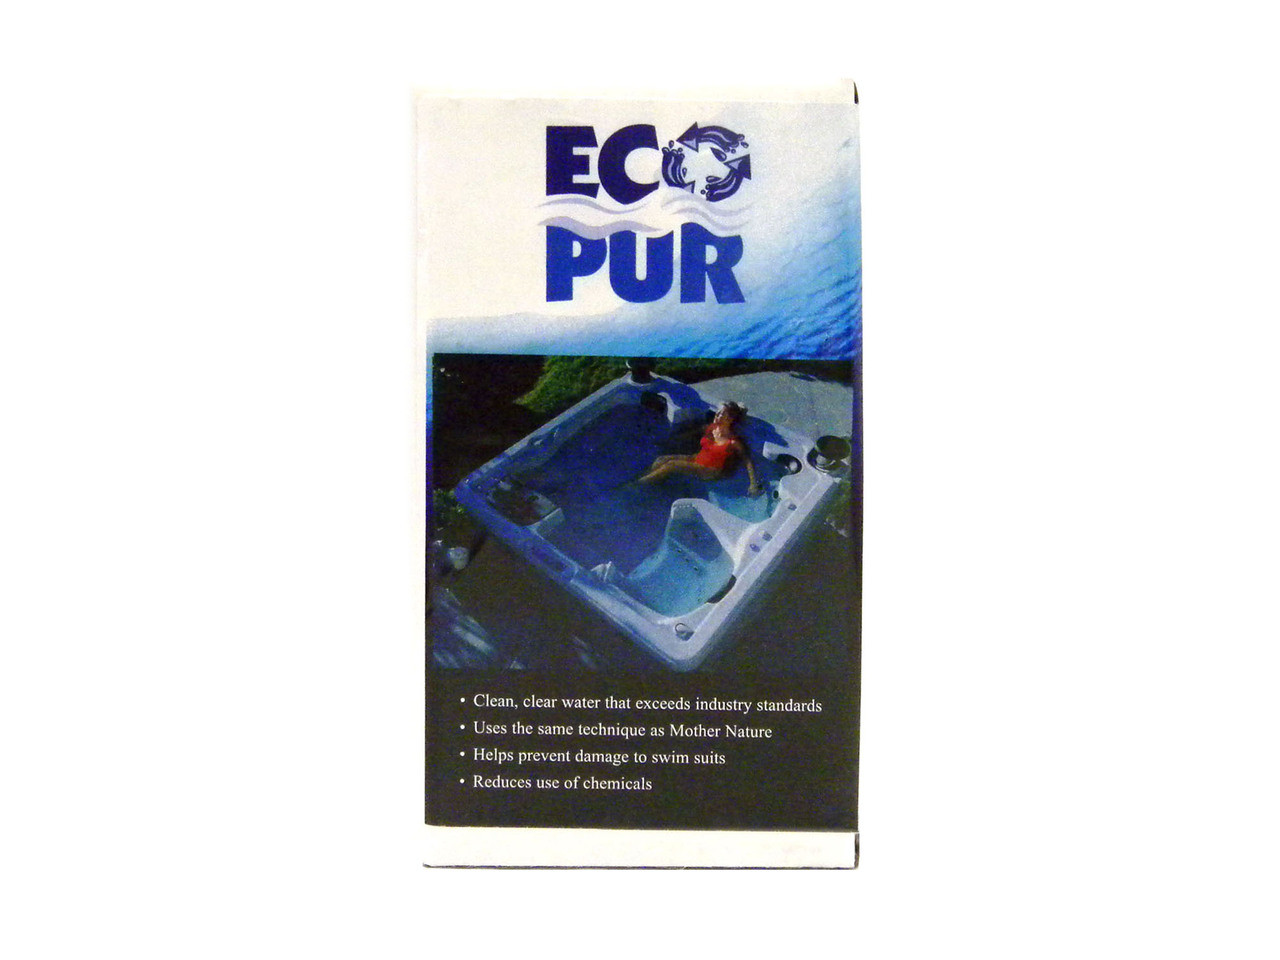 Master Spa - X268056 - PMAEP1 - Eco Pur Mineral Filter Insert - Side View with Packaging